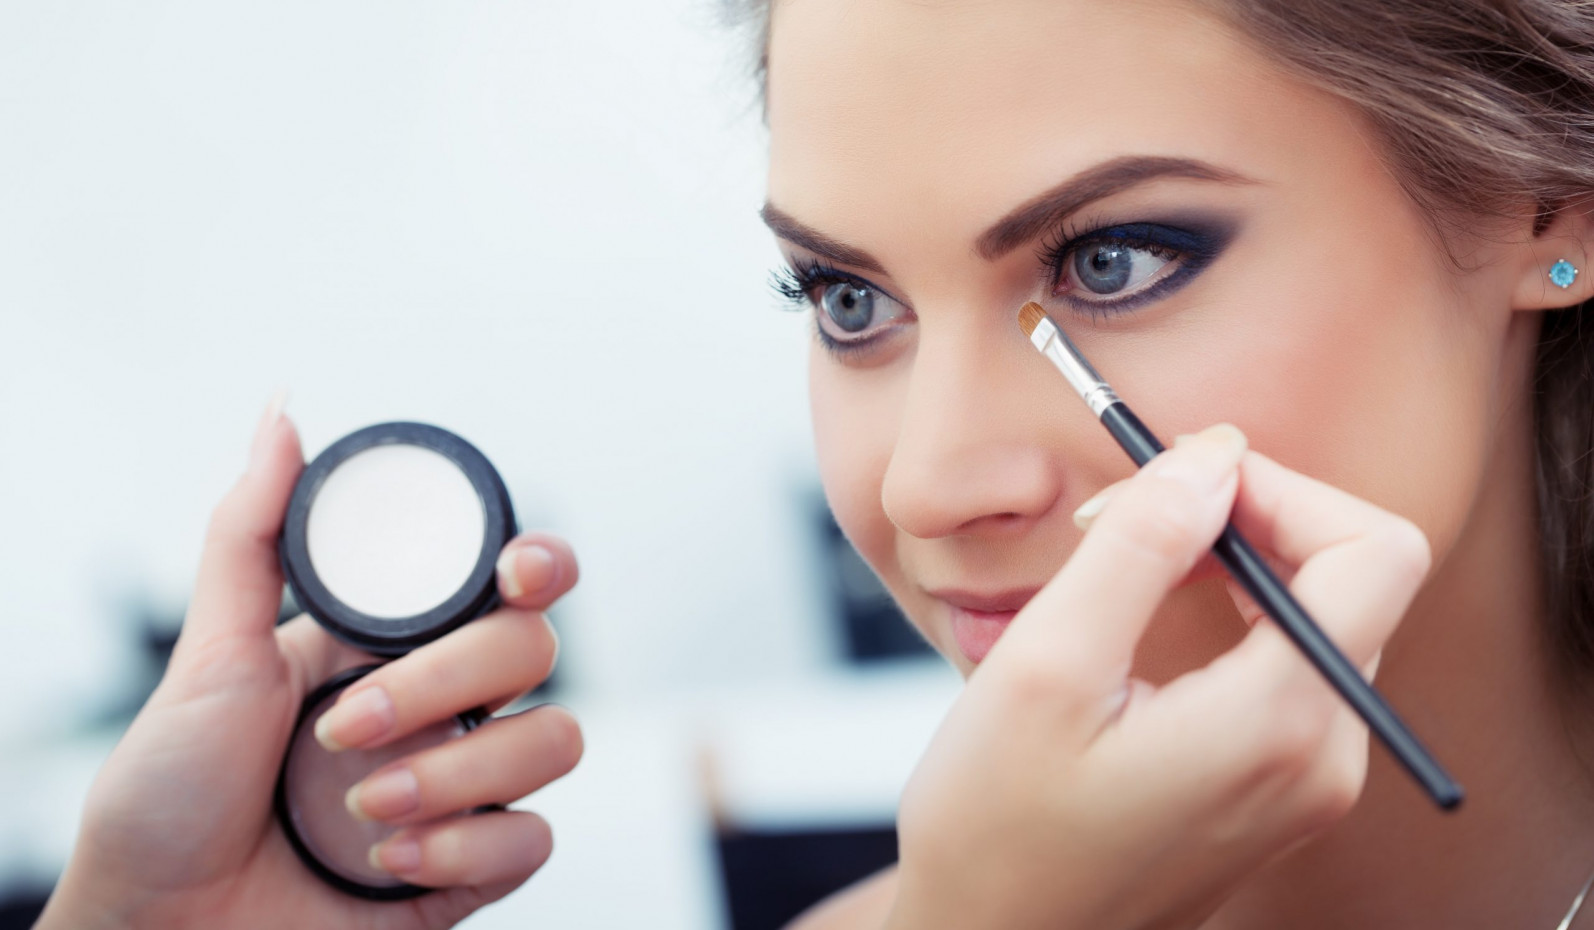 Are Women With Makeup More Confident than Without it?